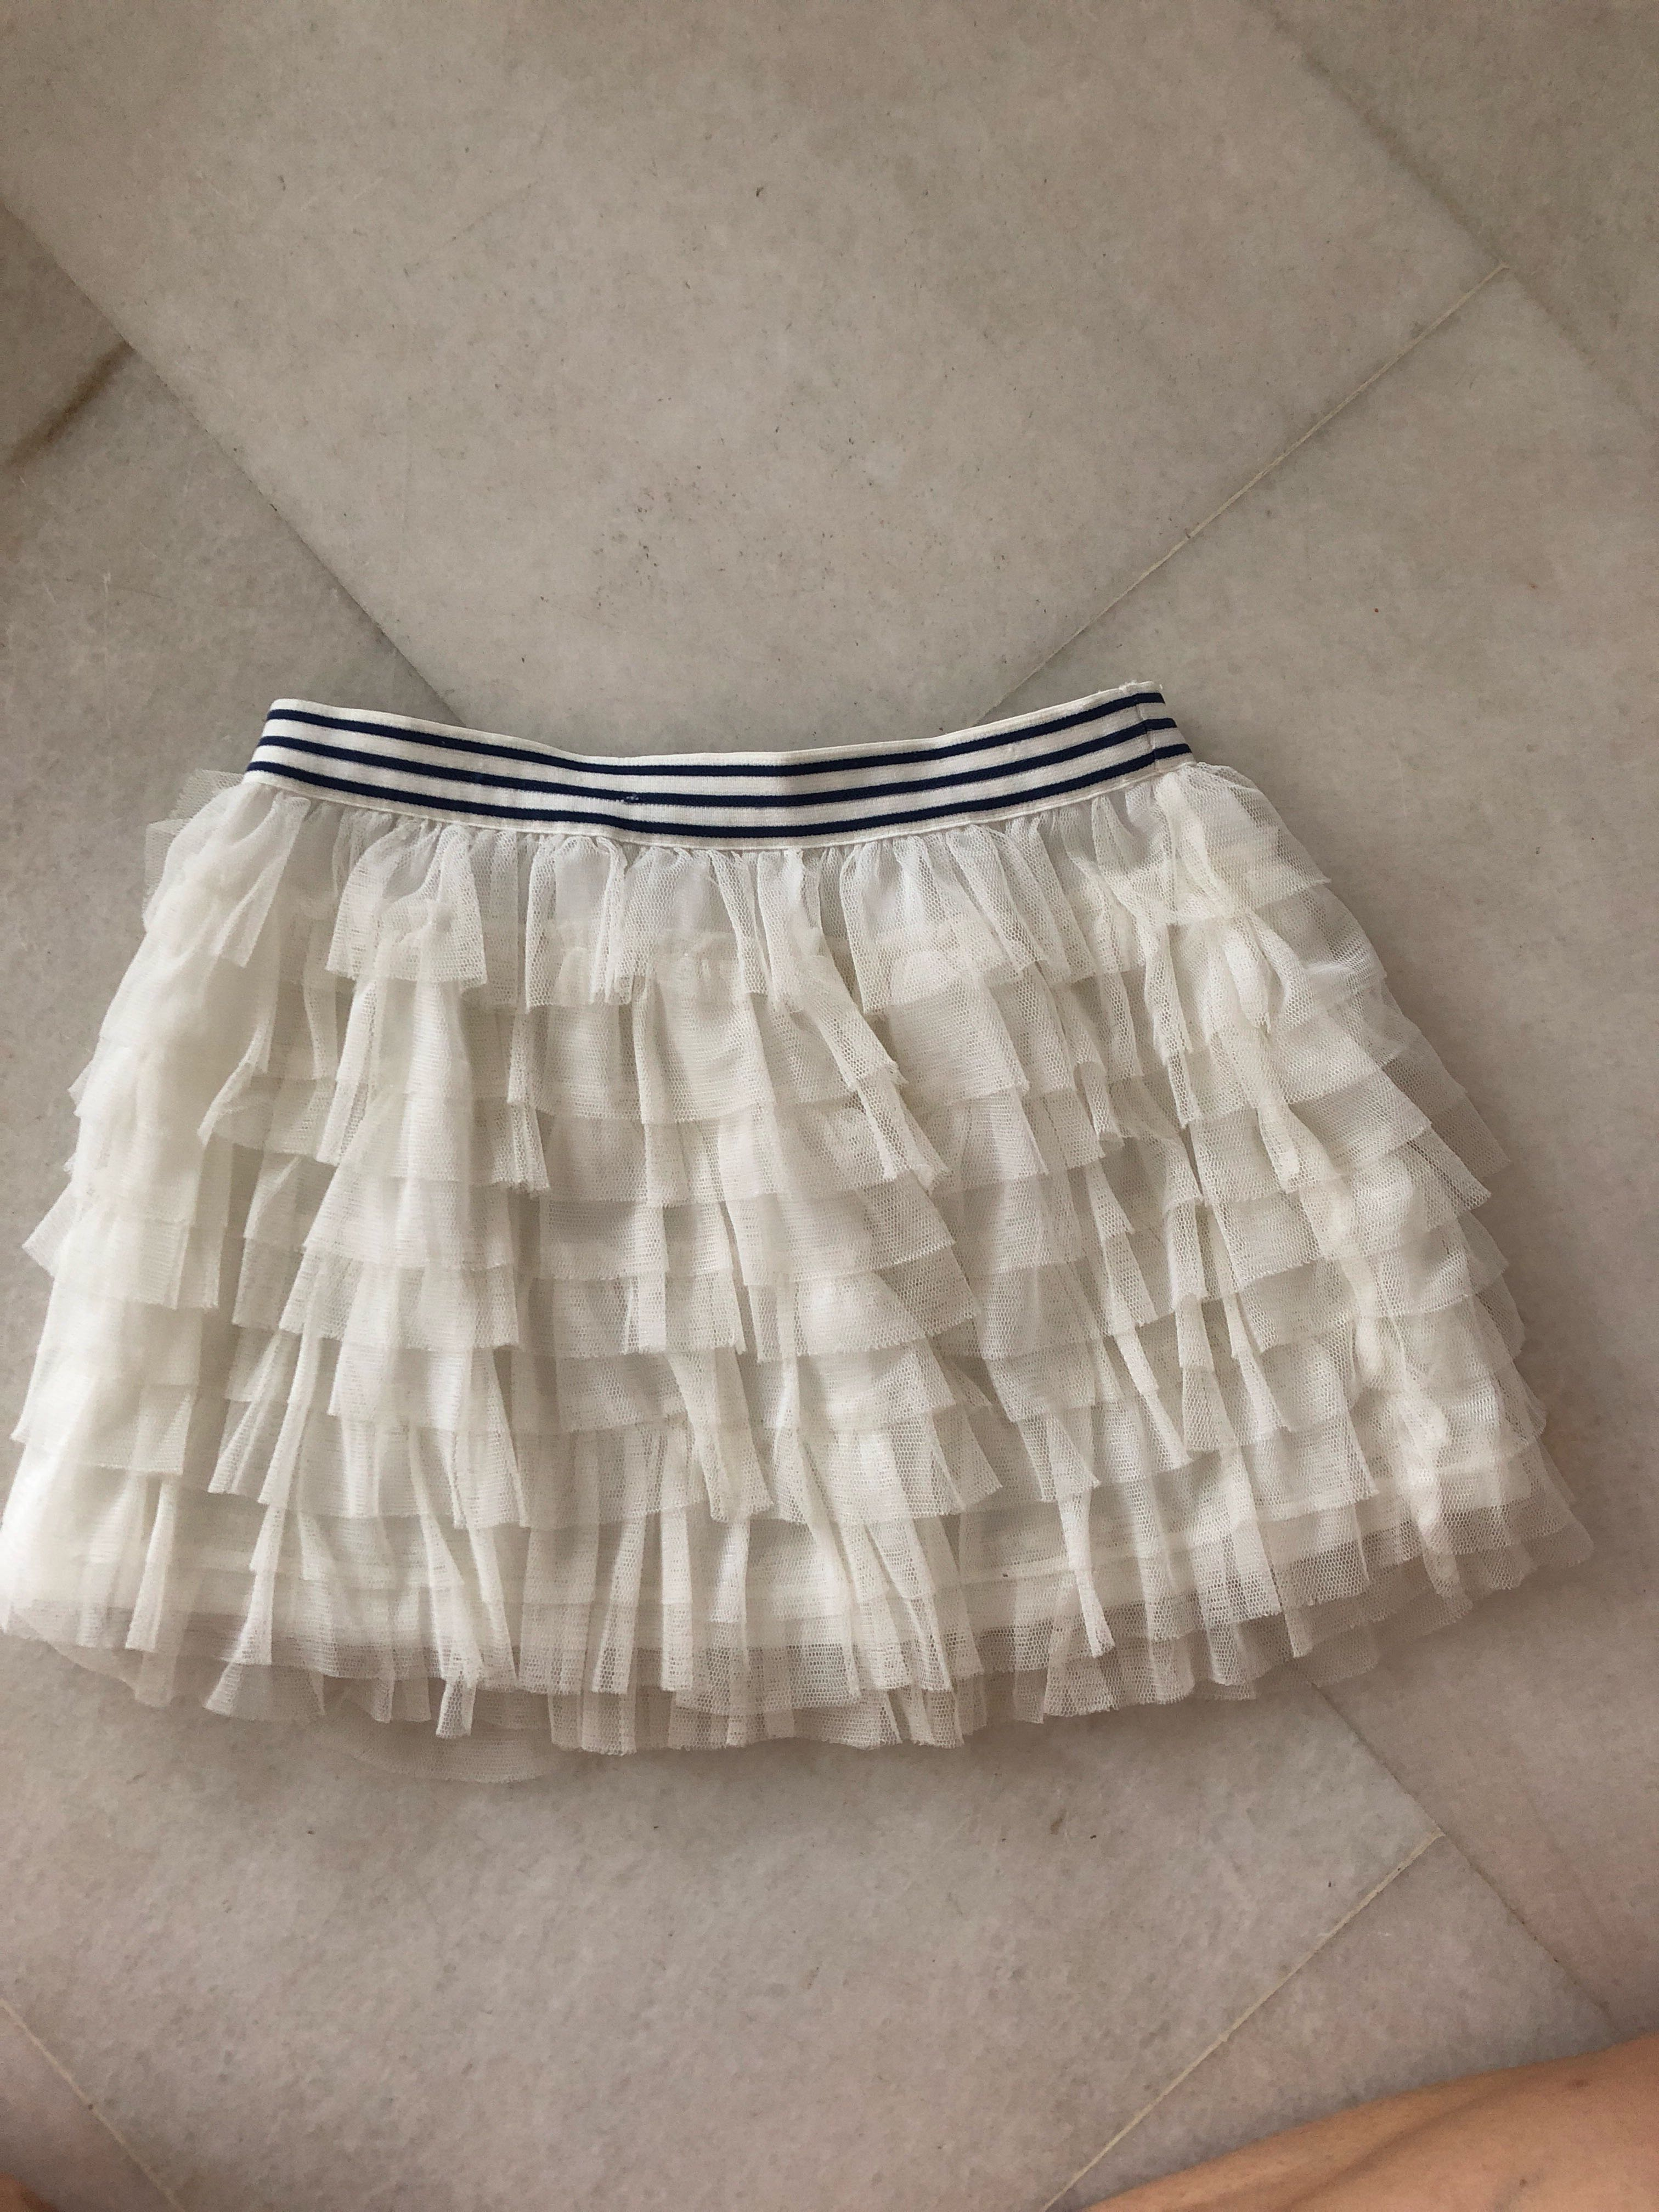 bb80ea8b1a60 Gingersnaps white tulle skirt size 6 used, Babies & Kids, Girls ...